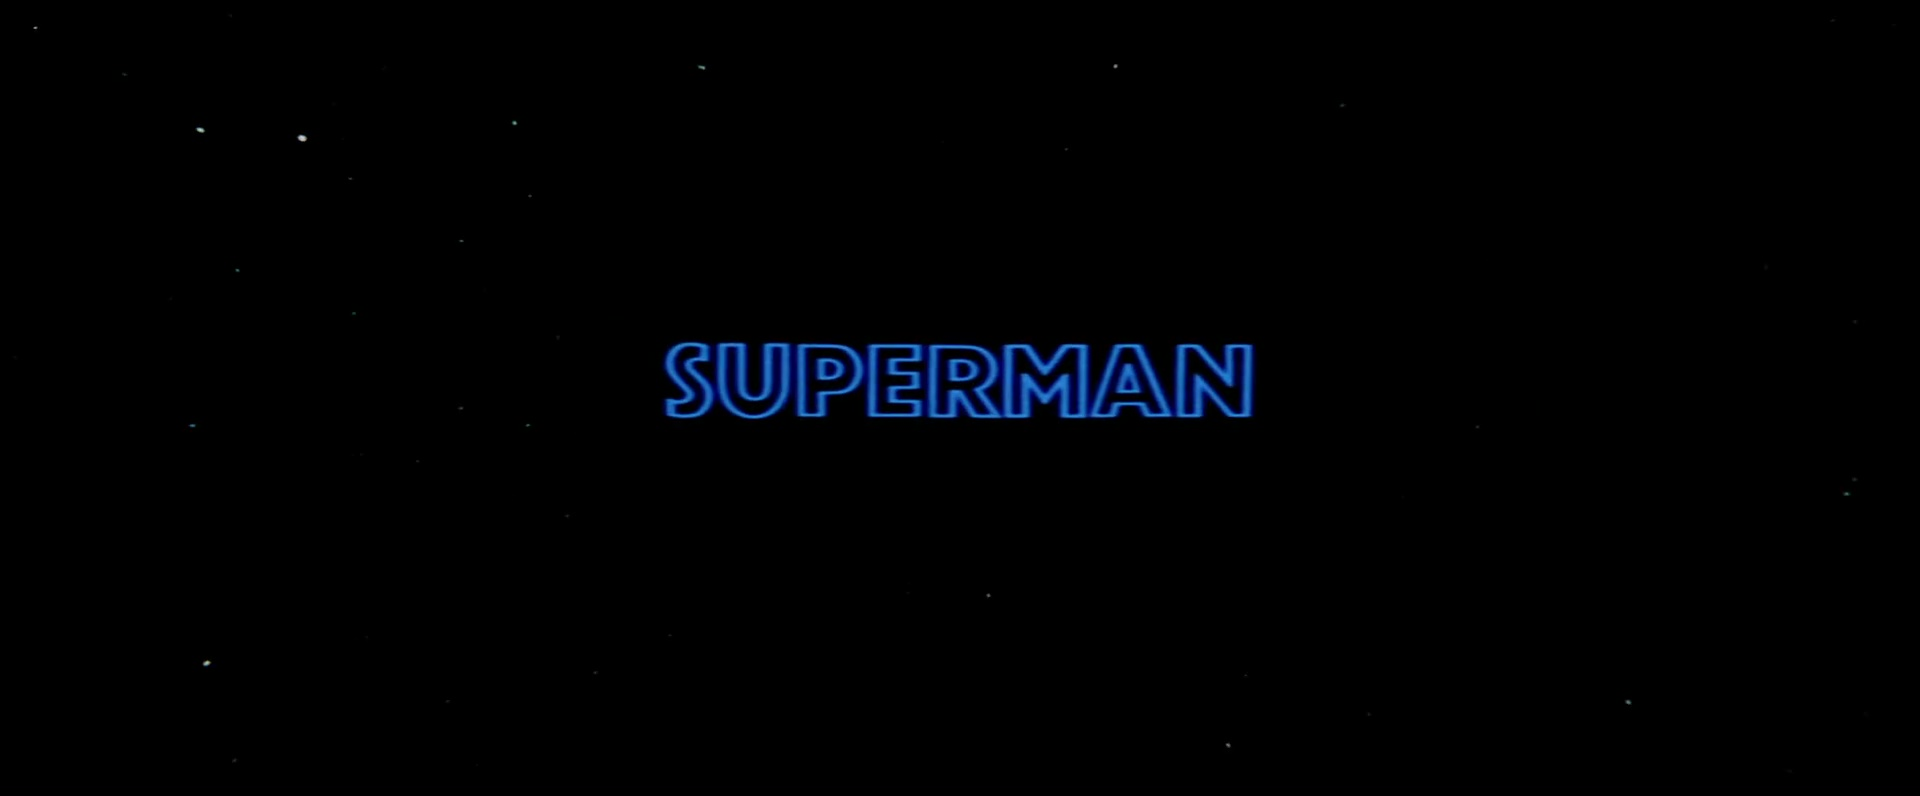 Superman the movie superman wiki fandom powered by wikia superman the movie biocorpaavc